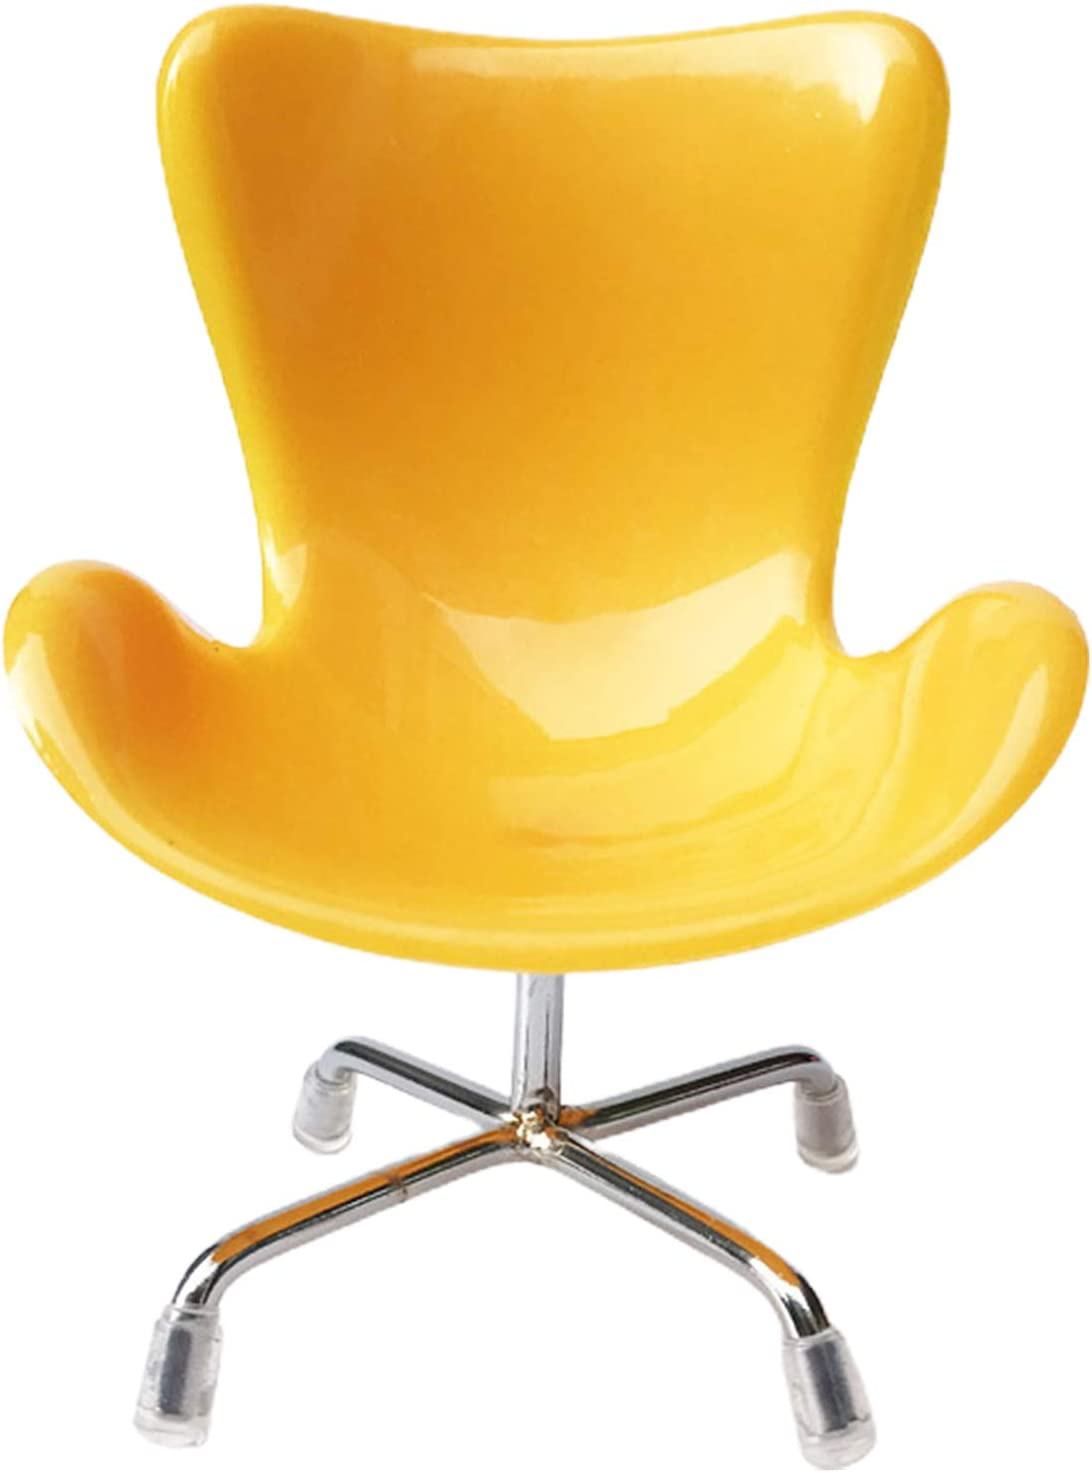 BARMI Miniature Plastic Swan Chair Mold Furniture Living Room Decor for 1/6 Doll House,Perfect DIY Dollhouse Toy Gift Set Yellow